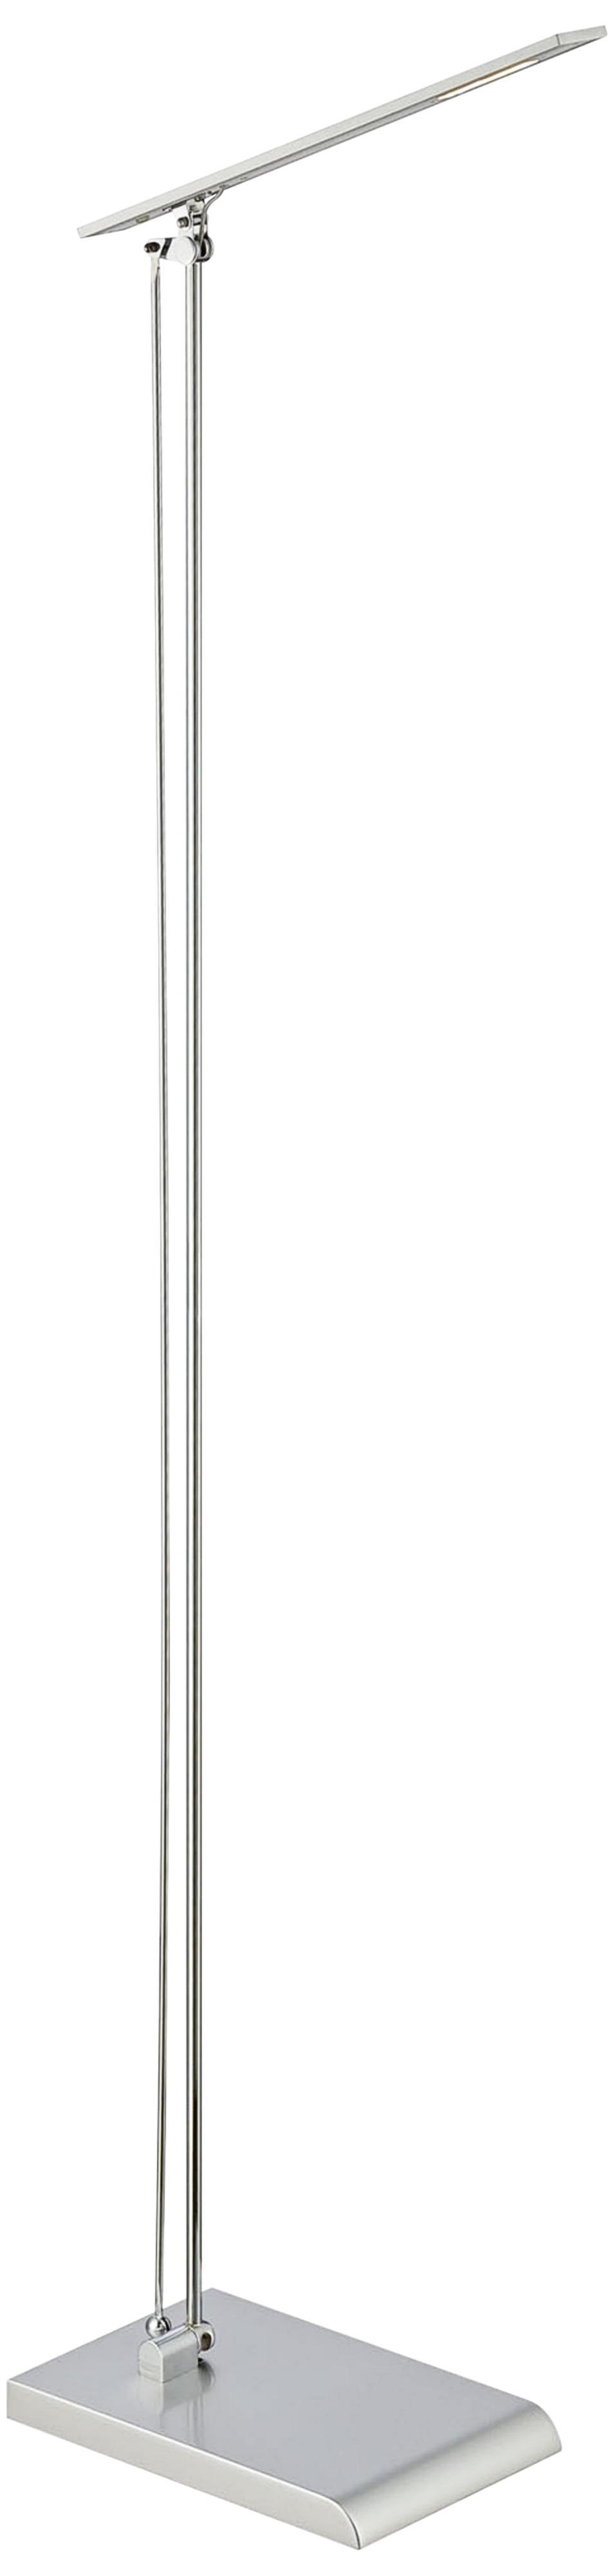 Lite Source Lotta Aluminum LED Floor Lamp (5P423)